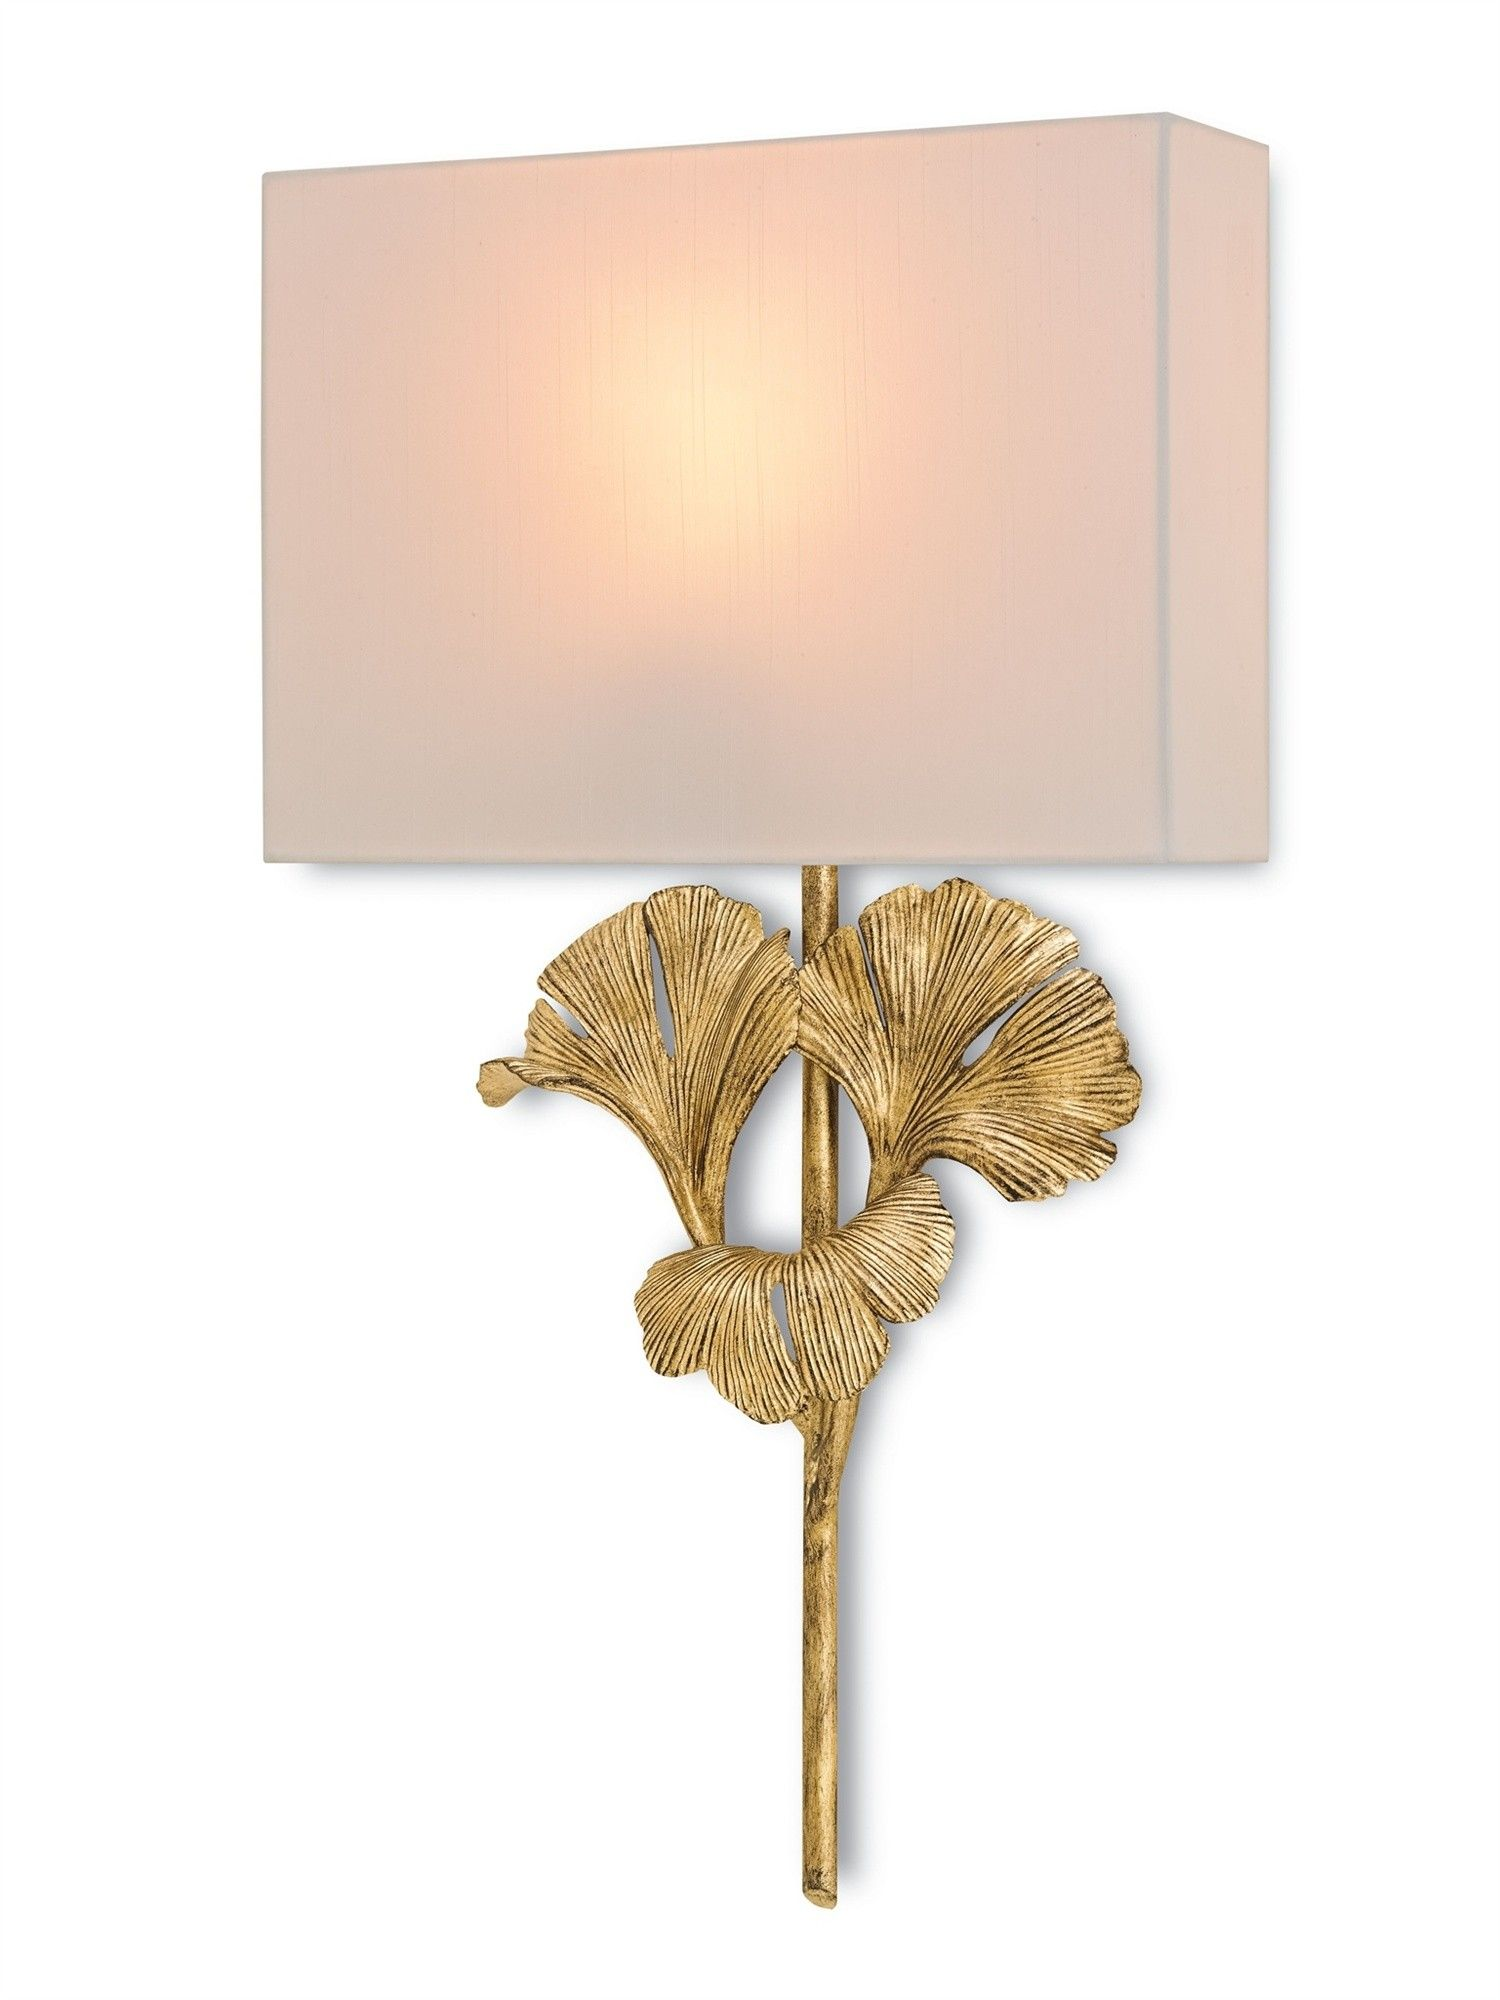 Currey & Company Gingko Leaf Design Wall Sconce in Antique Gold ...